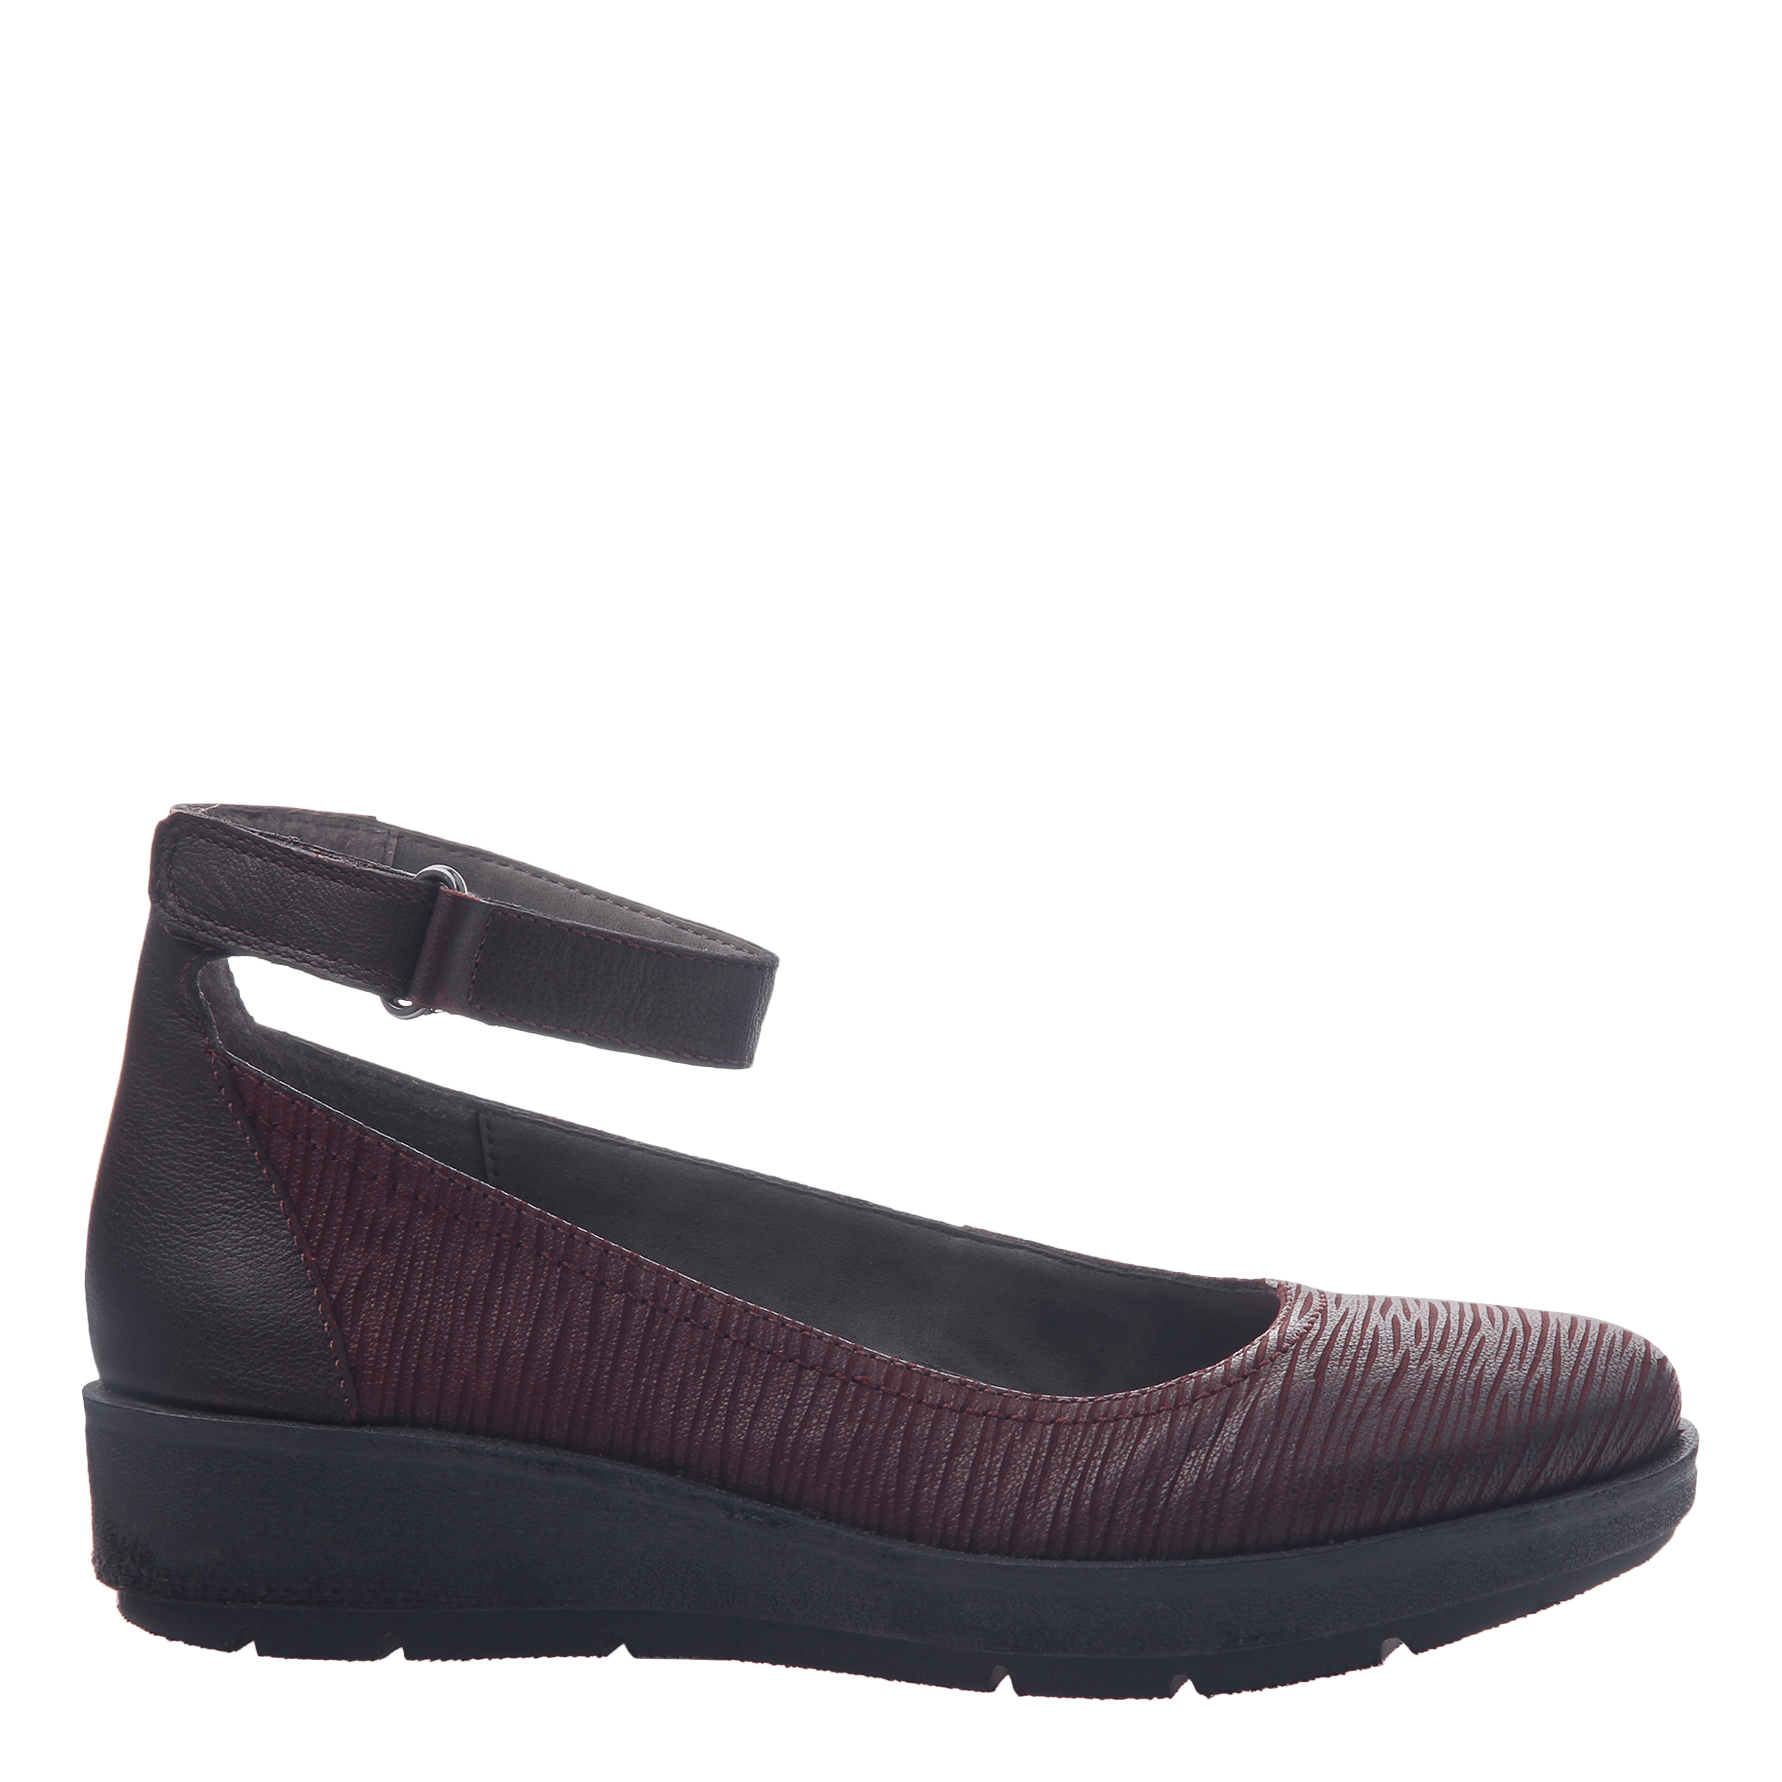 Womens ballet flat the scamper in burgundy